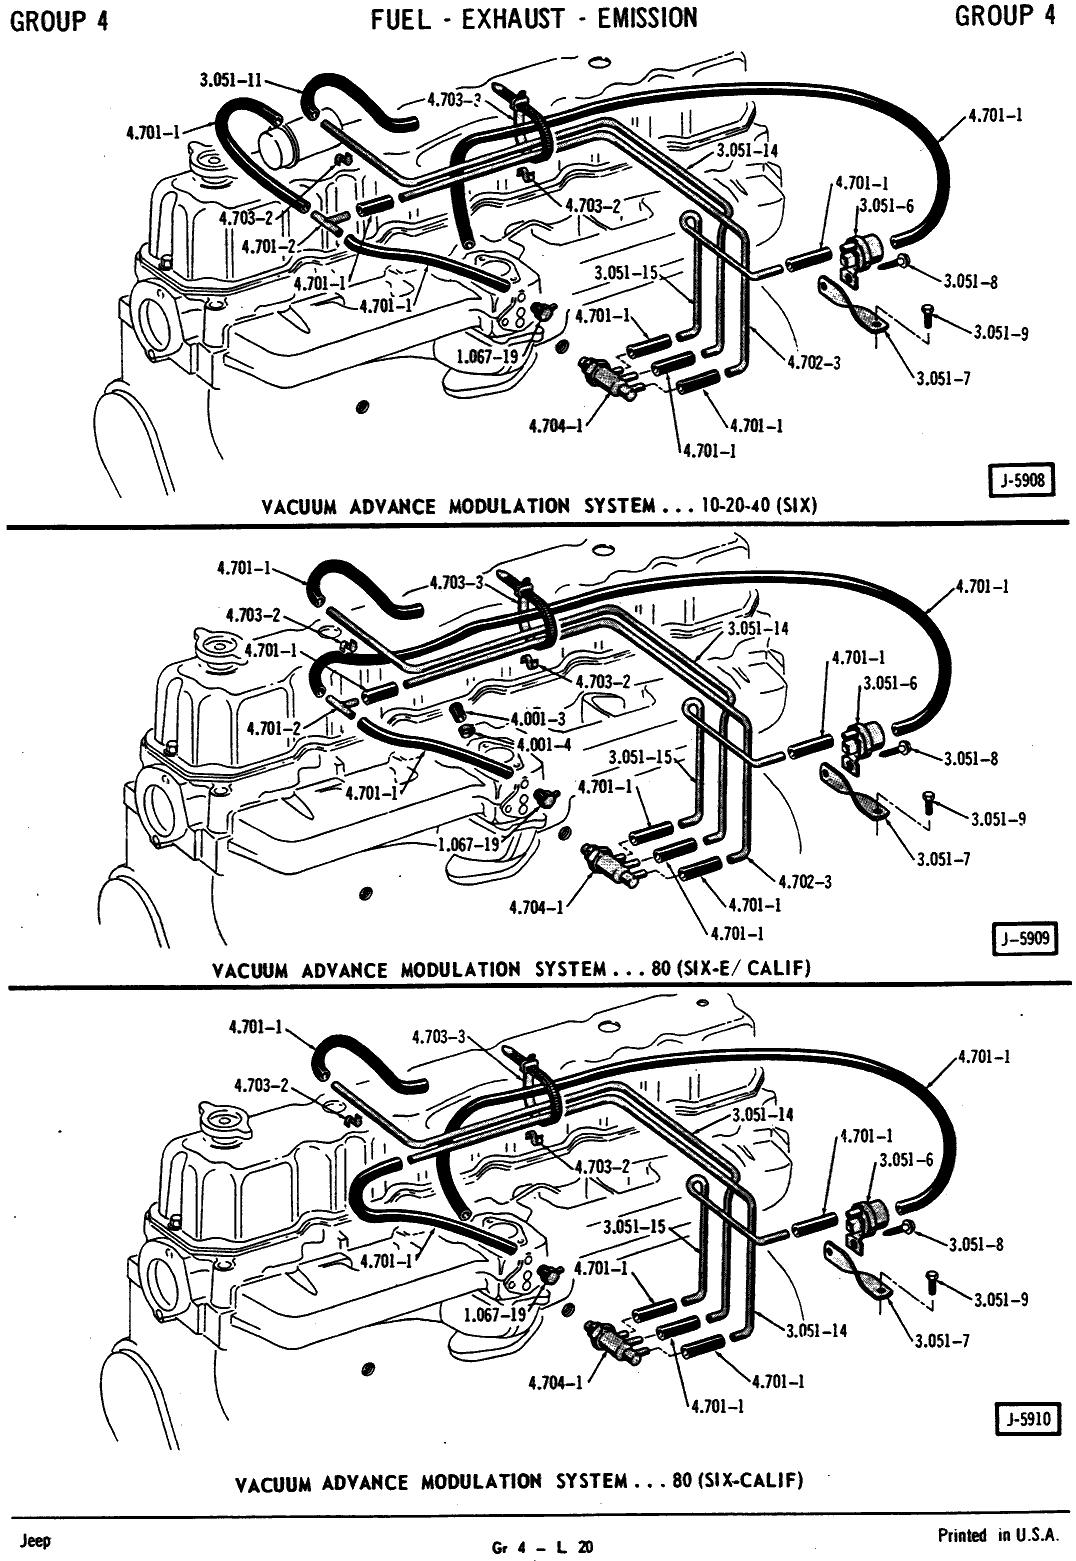 Well Jeep Wrangler Heater Diagram On Jeep Cj7 304 Fuel Line ... Jeep Cj I Engine Diagram on